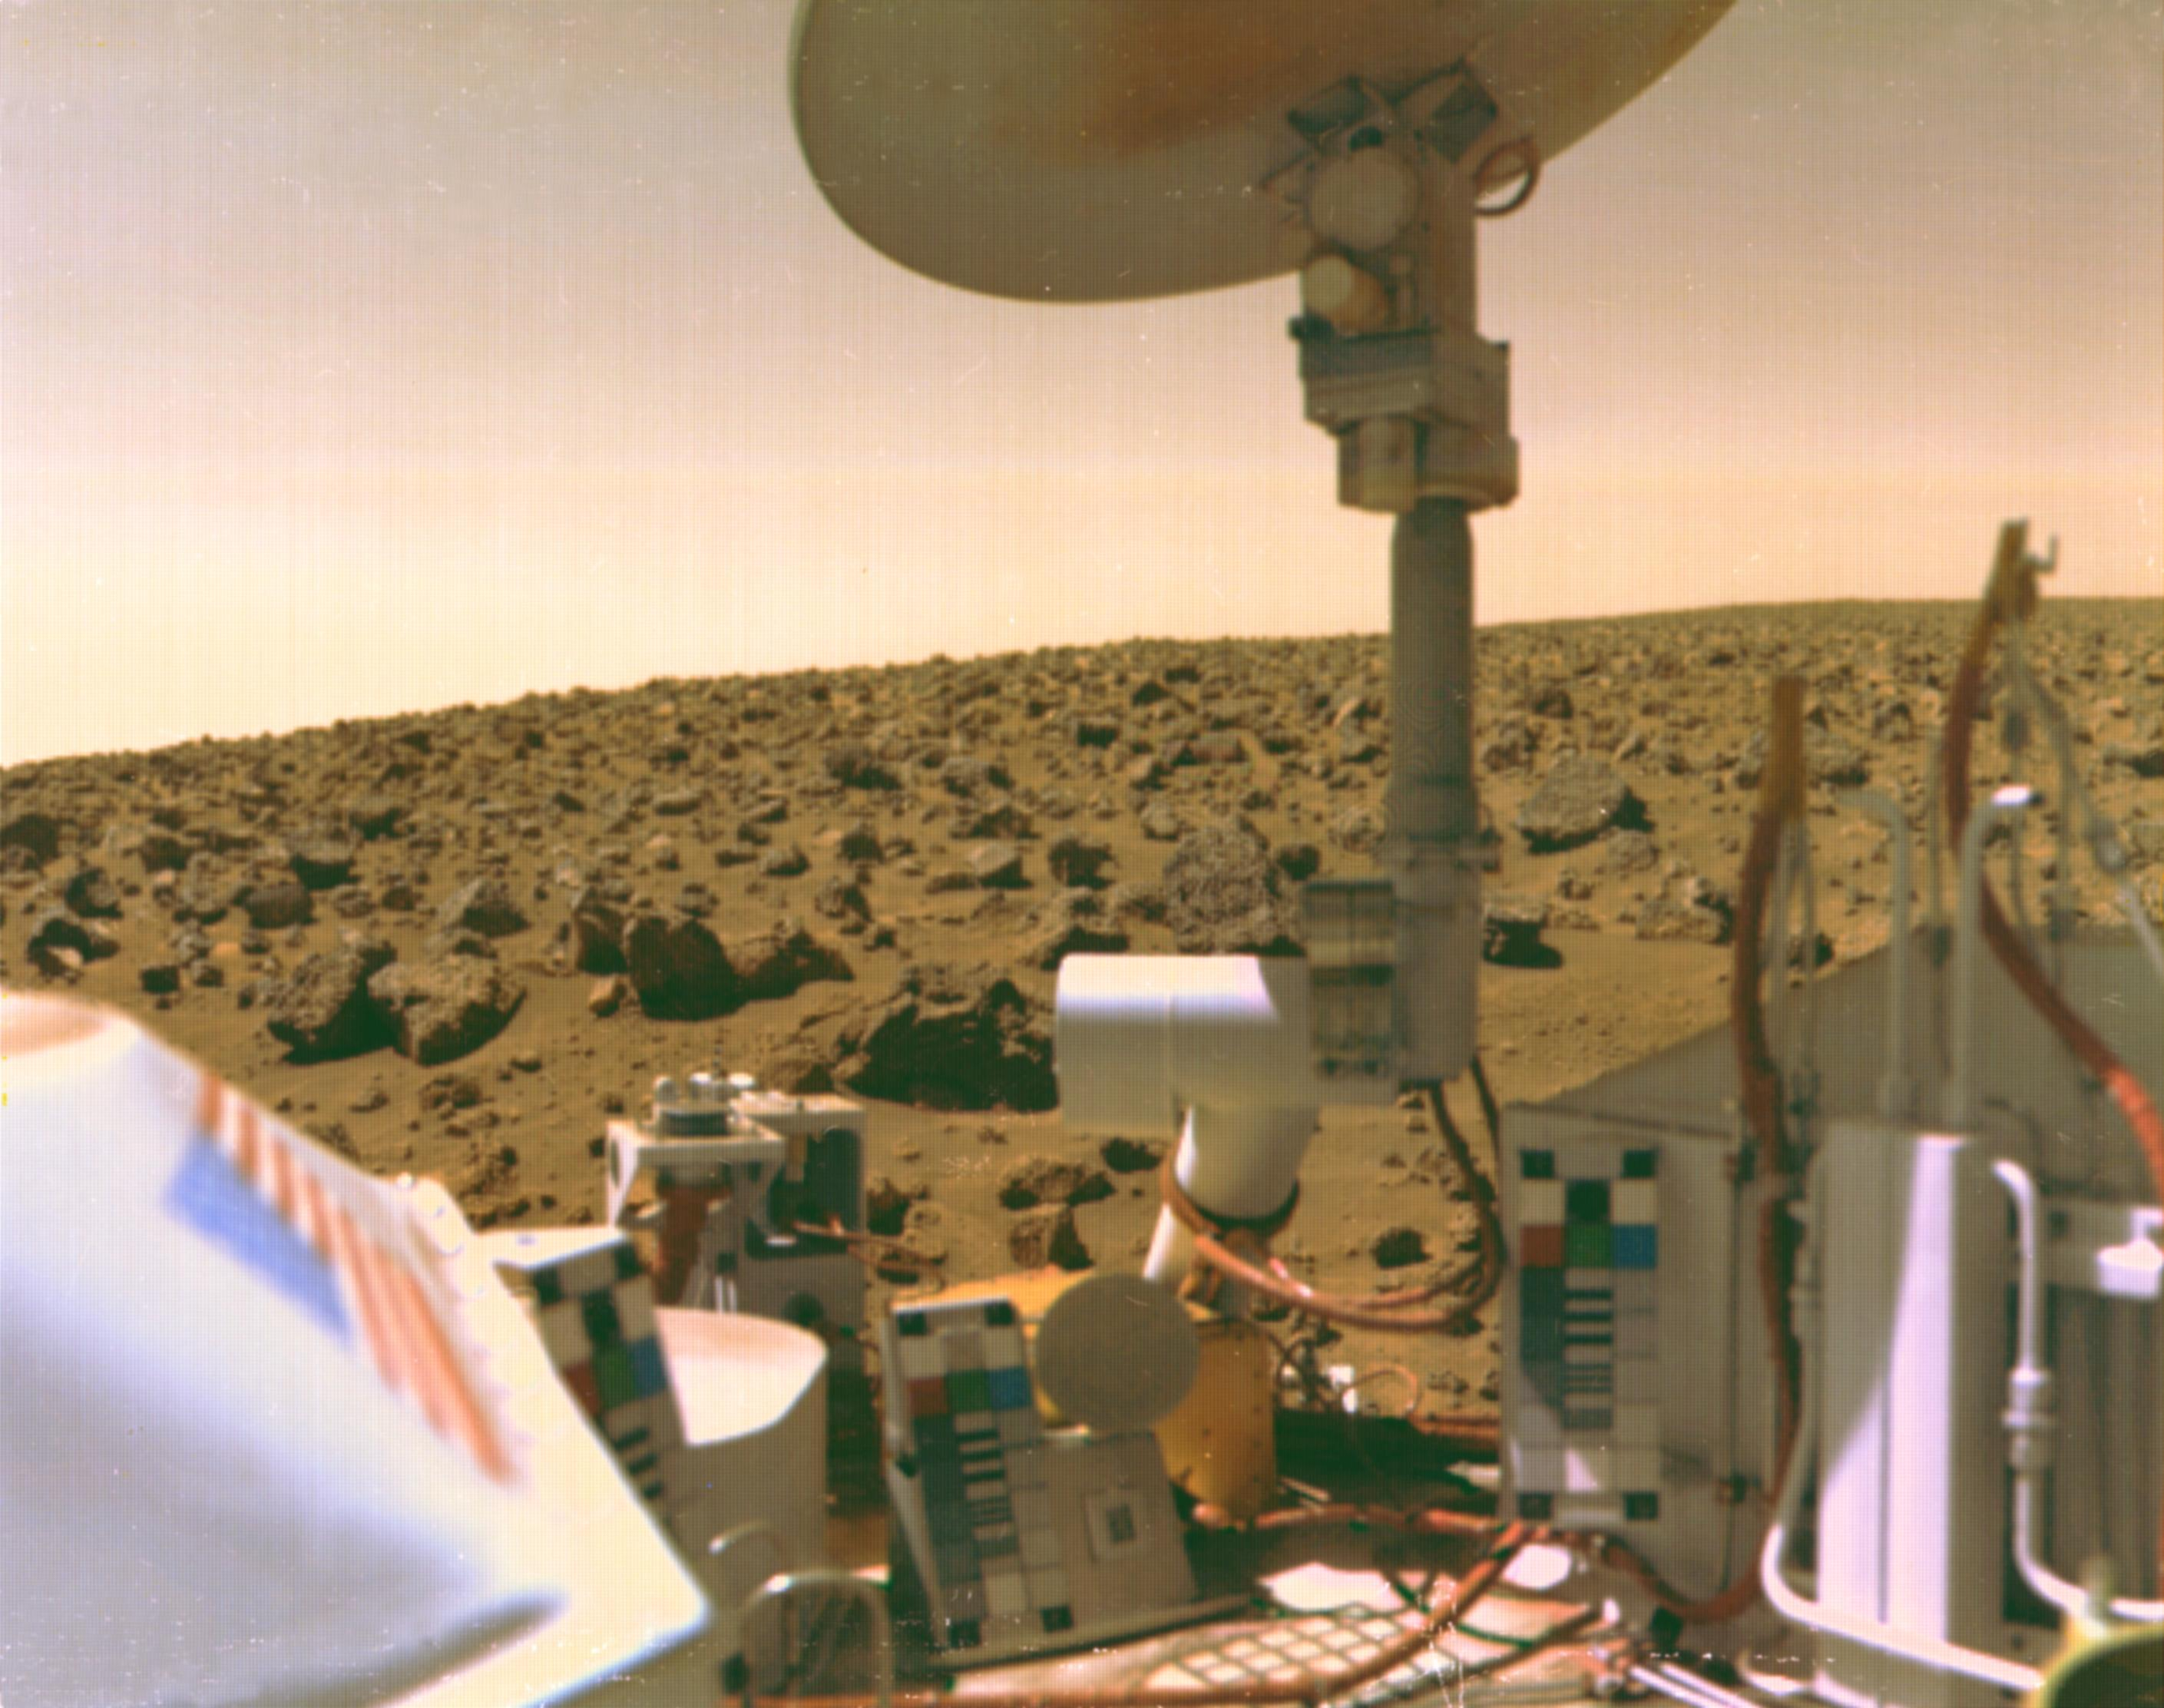 Part of Viking 2 seen with Martian boulder field in the background.